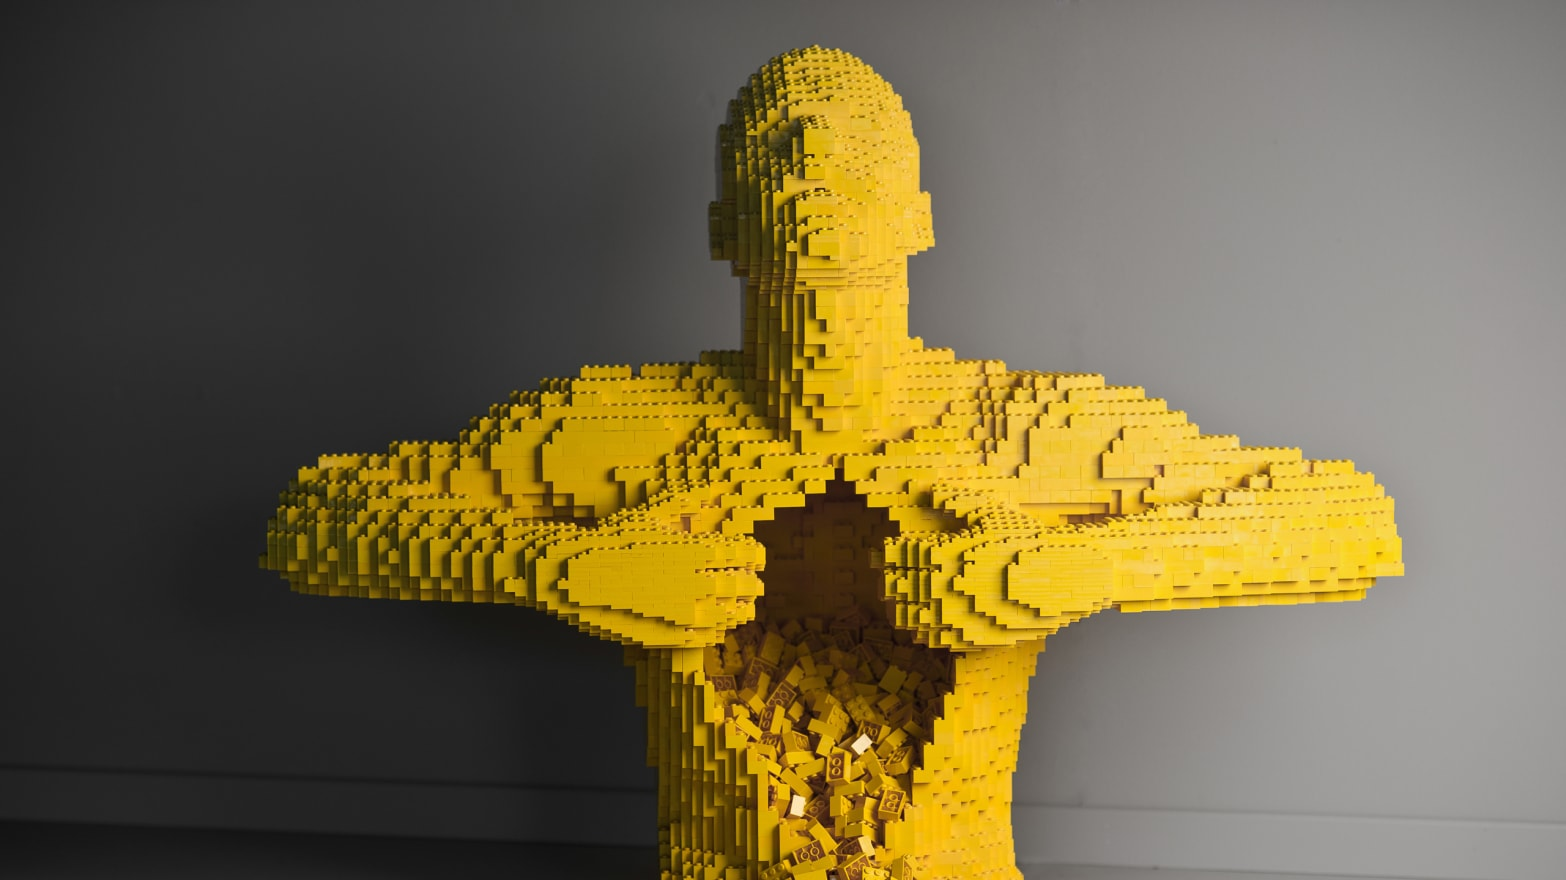 K And K Auto >> 20 Amazing Lego Sculptures That Will Blow Your Mind (PHOTOS)